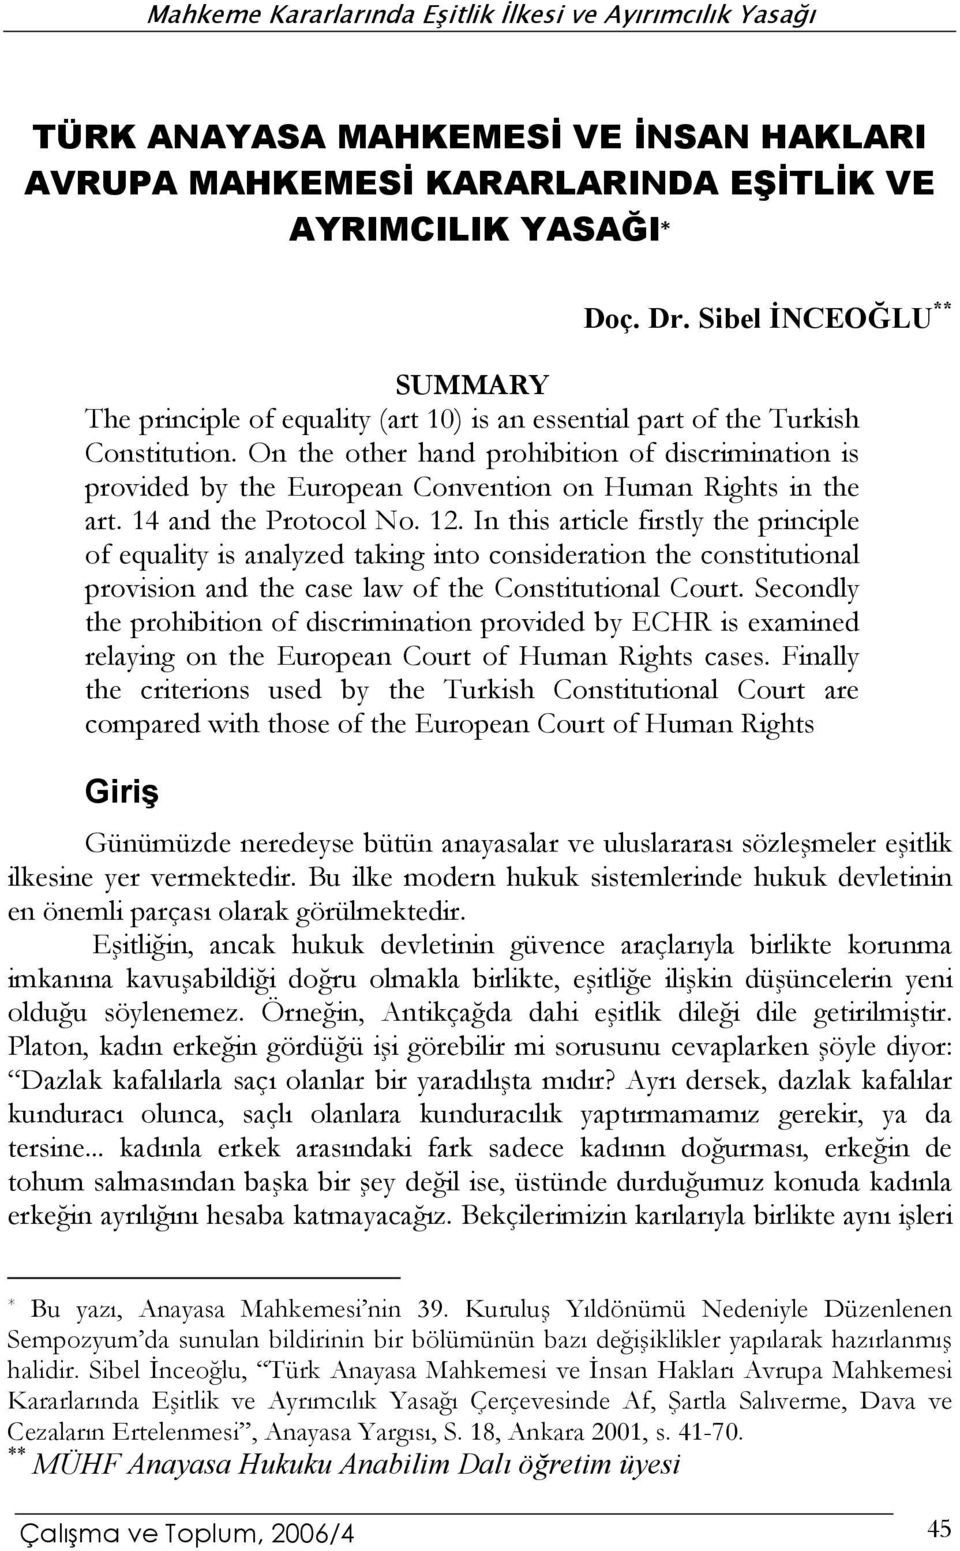 On the other hand prohibition of discrimination is provided by the European Convention on Human Rights in the art. 14 and the Protocol No. 12.